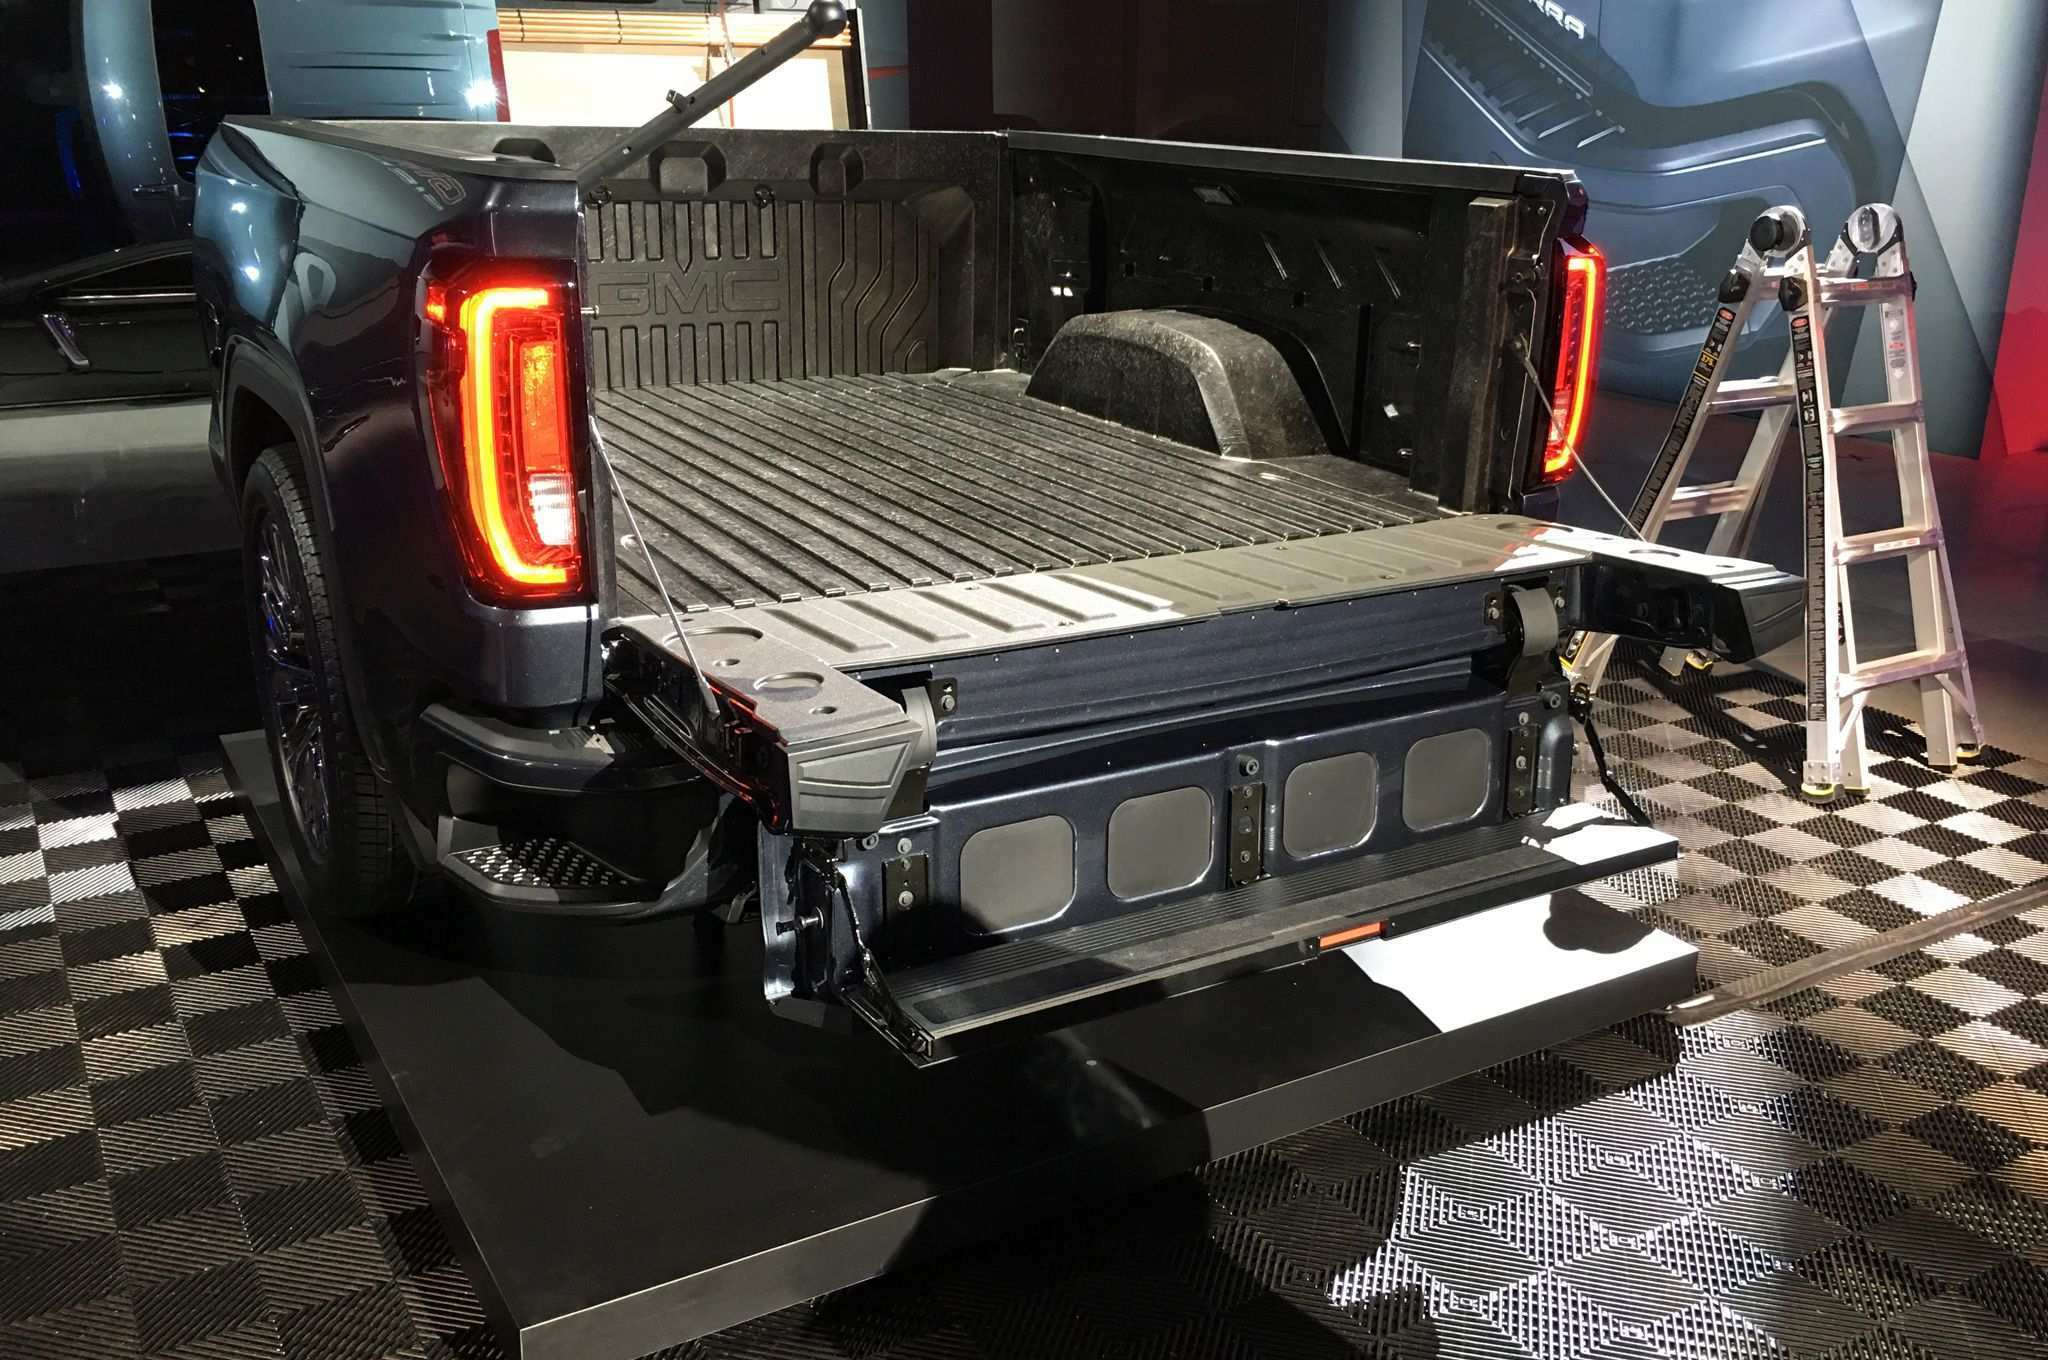 49 Great 2019 Gmc New Tailgate Release Date by 2019 Gmc New Tailgate